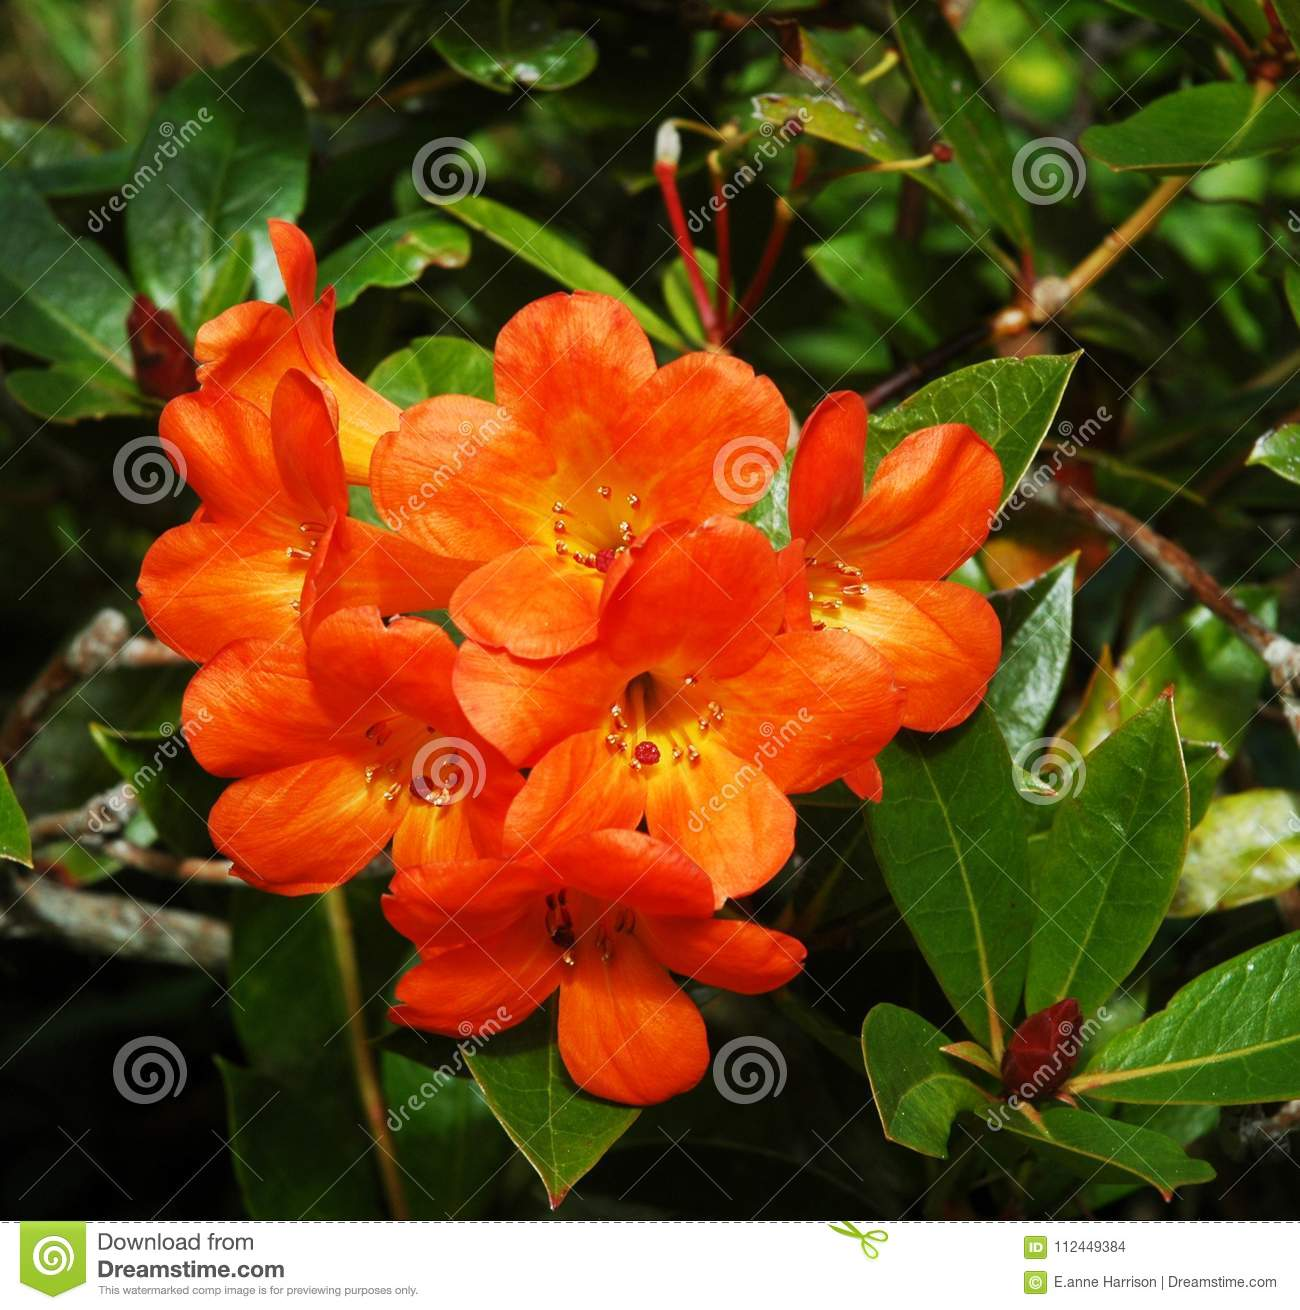 A Cluster Of Bright Orange Flowers On A Bush With Dark